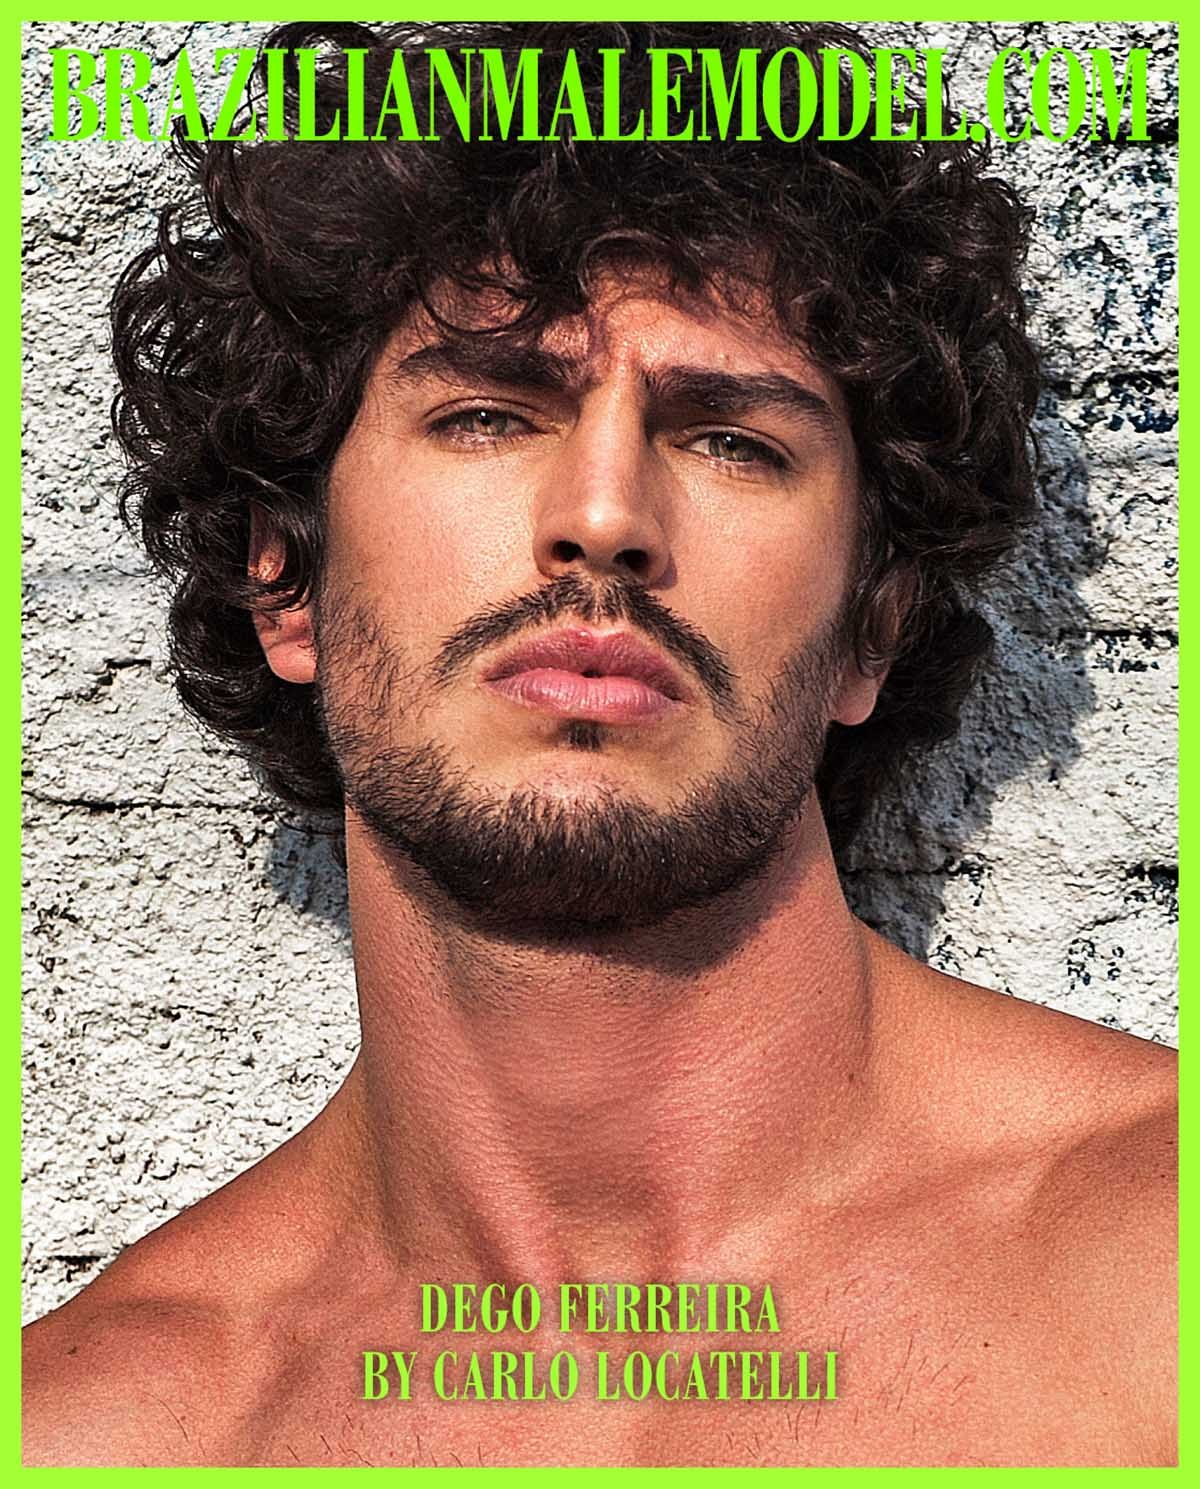 Dego Ferreira by Carlo Locatelli